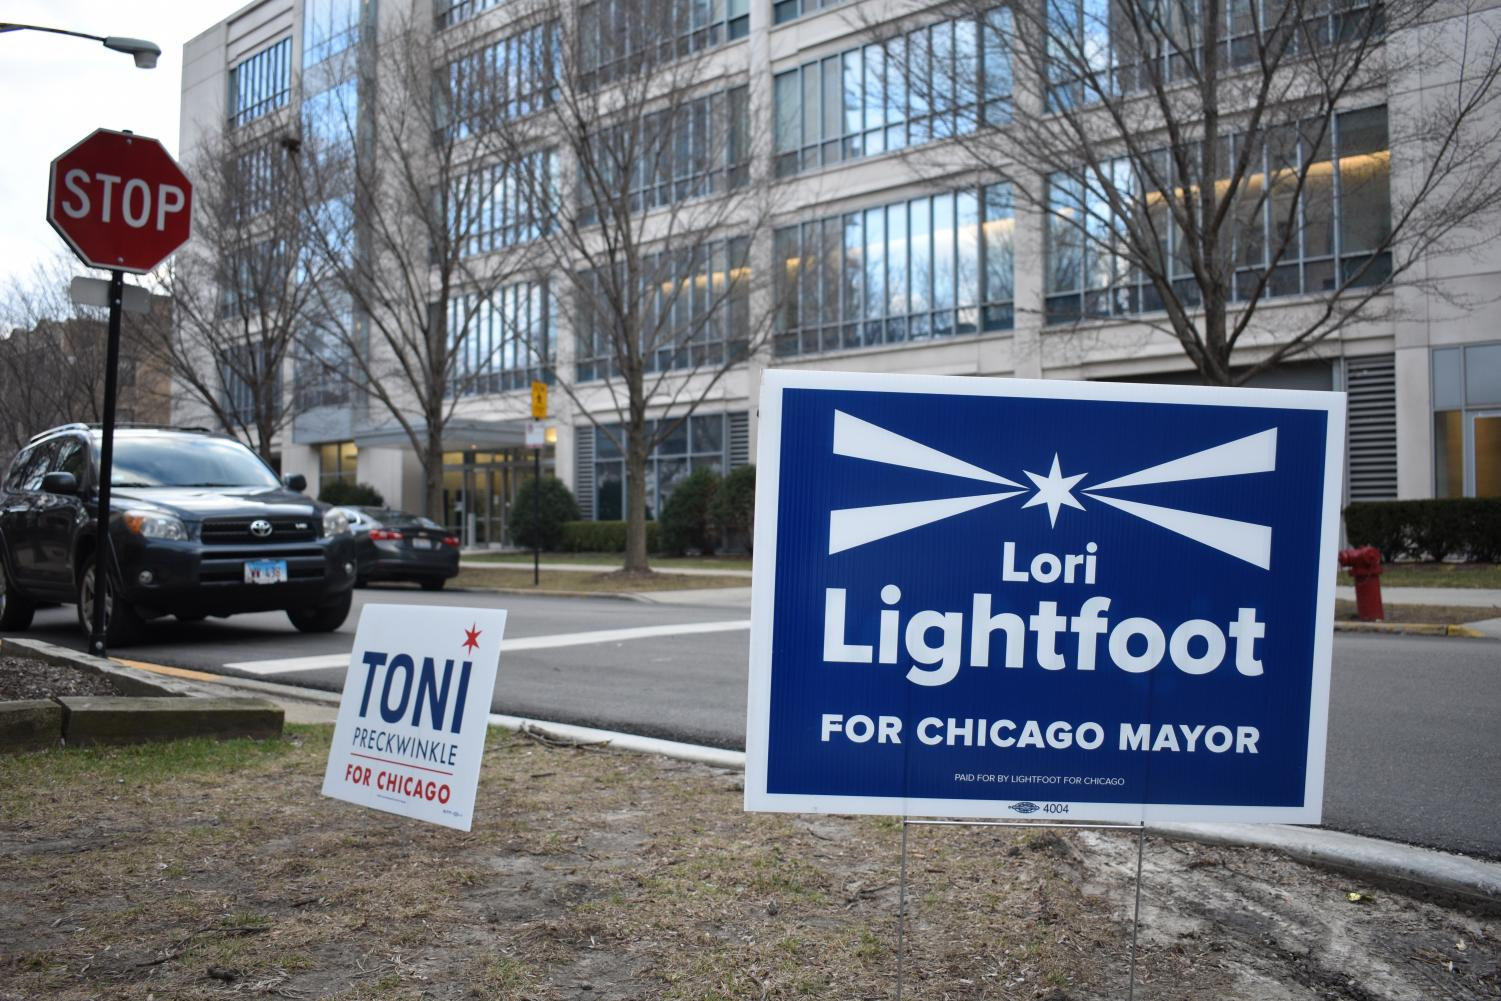 The campaign signs for Lightfoot and Preckwinkle have been all over Hyde Park and Chicago for a few months now.